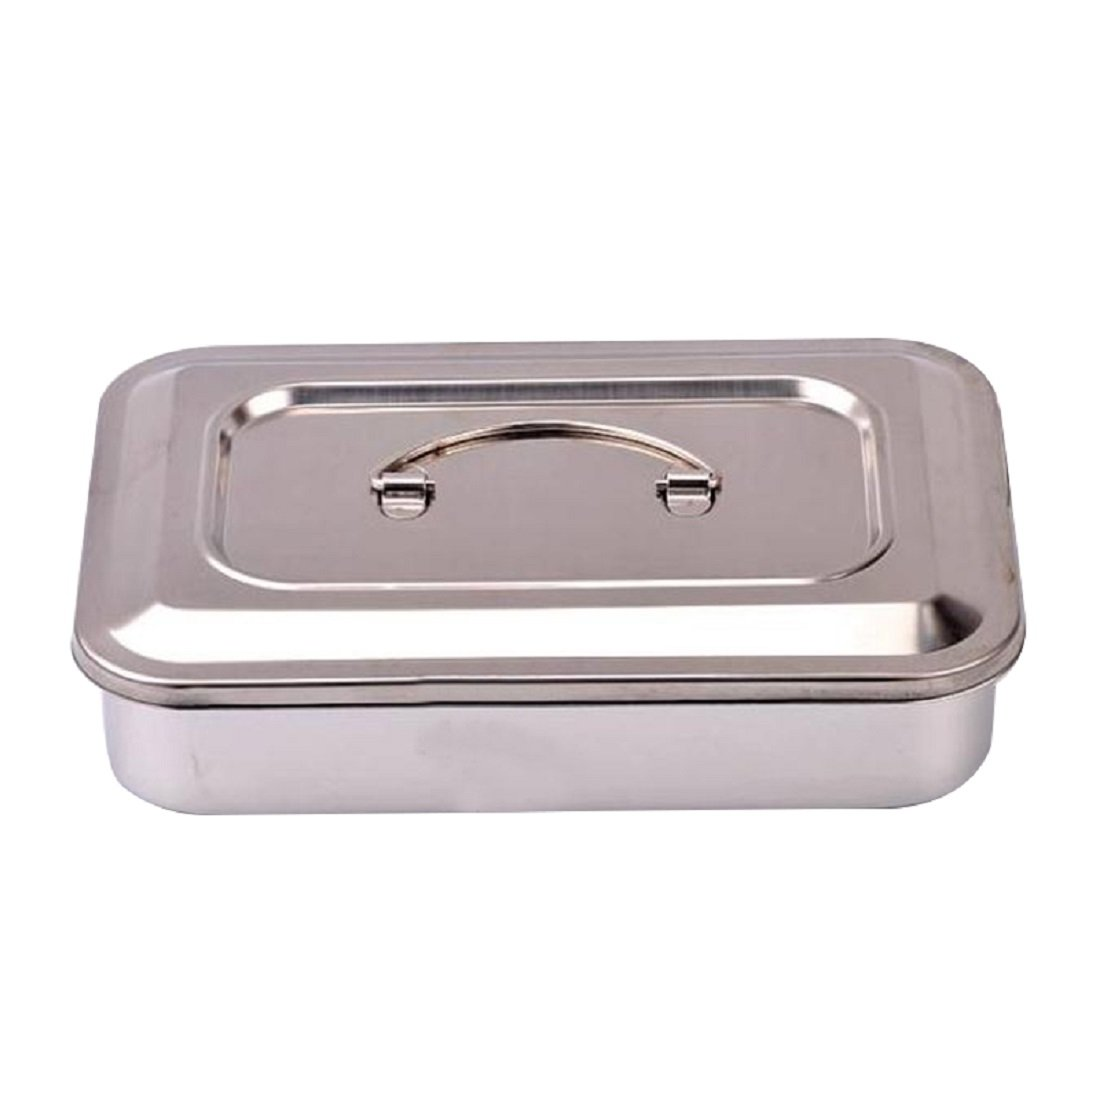 Tinsay Medical Stainless Steel Sterilizer Box Square Dish With Lid Dental Instruments 9 Inch